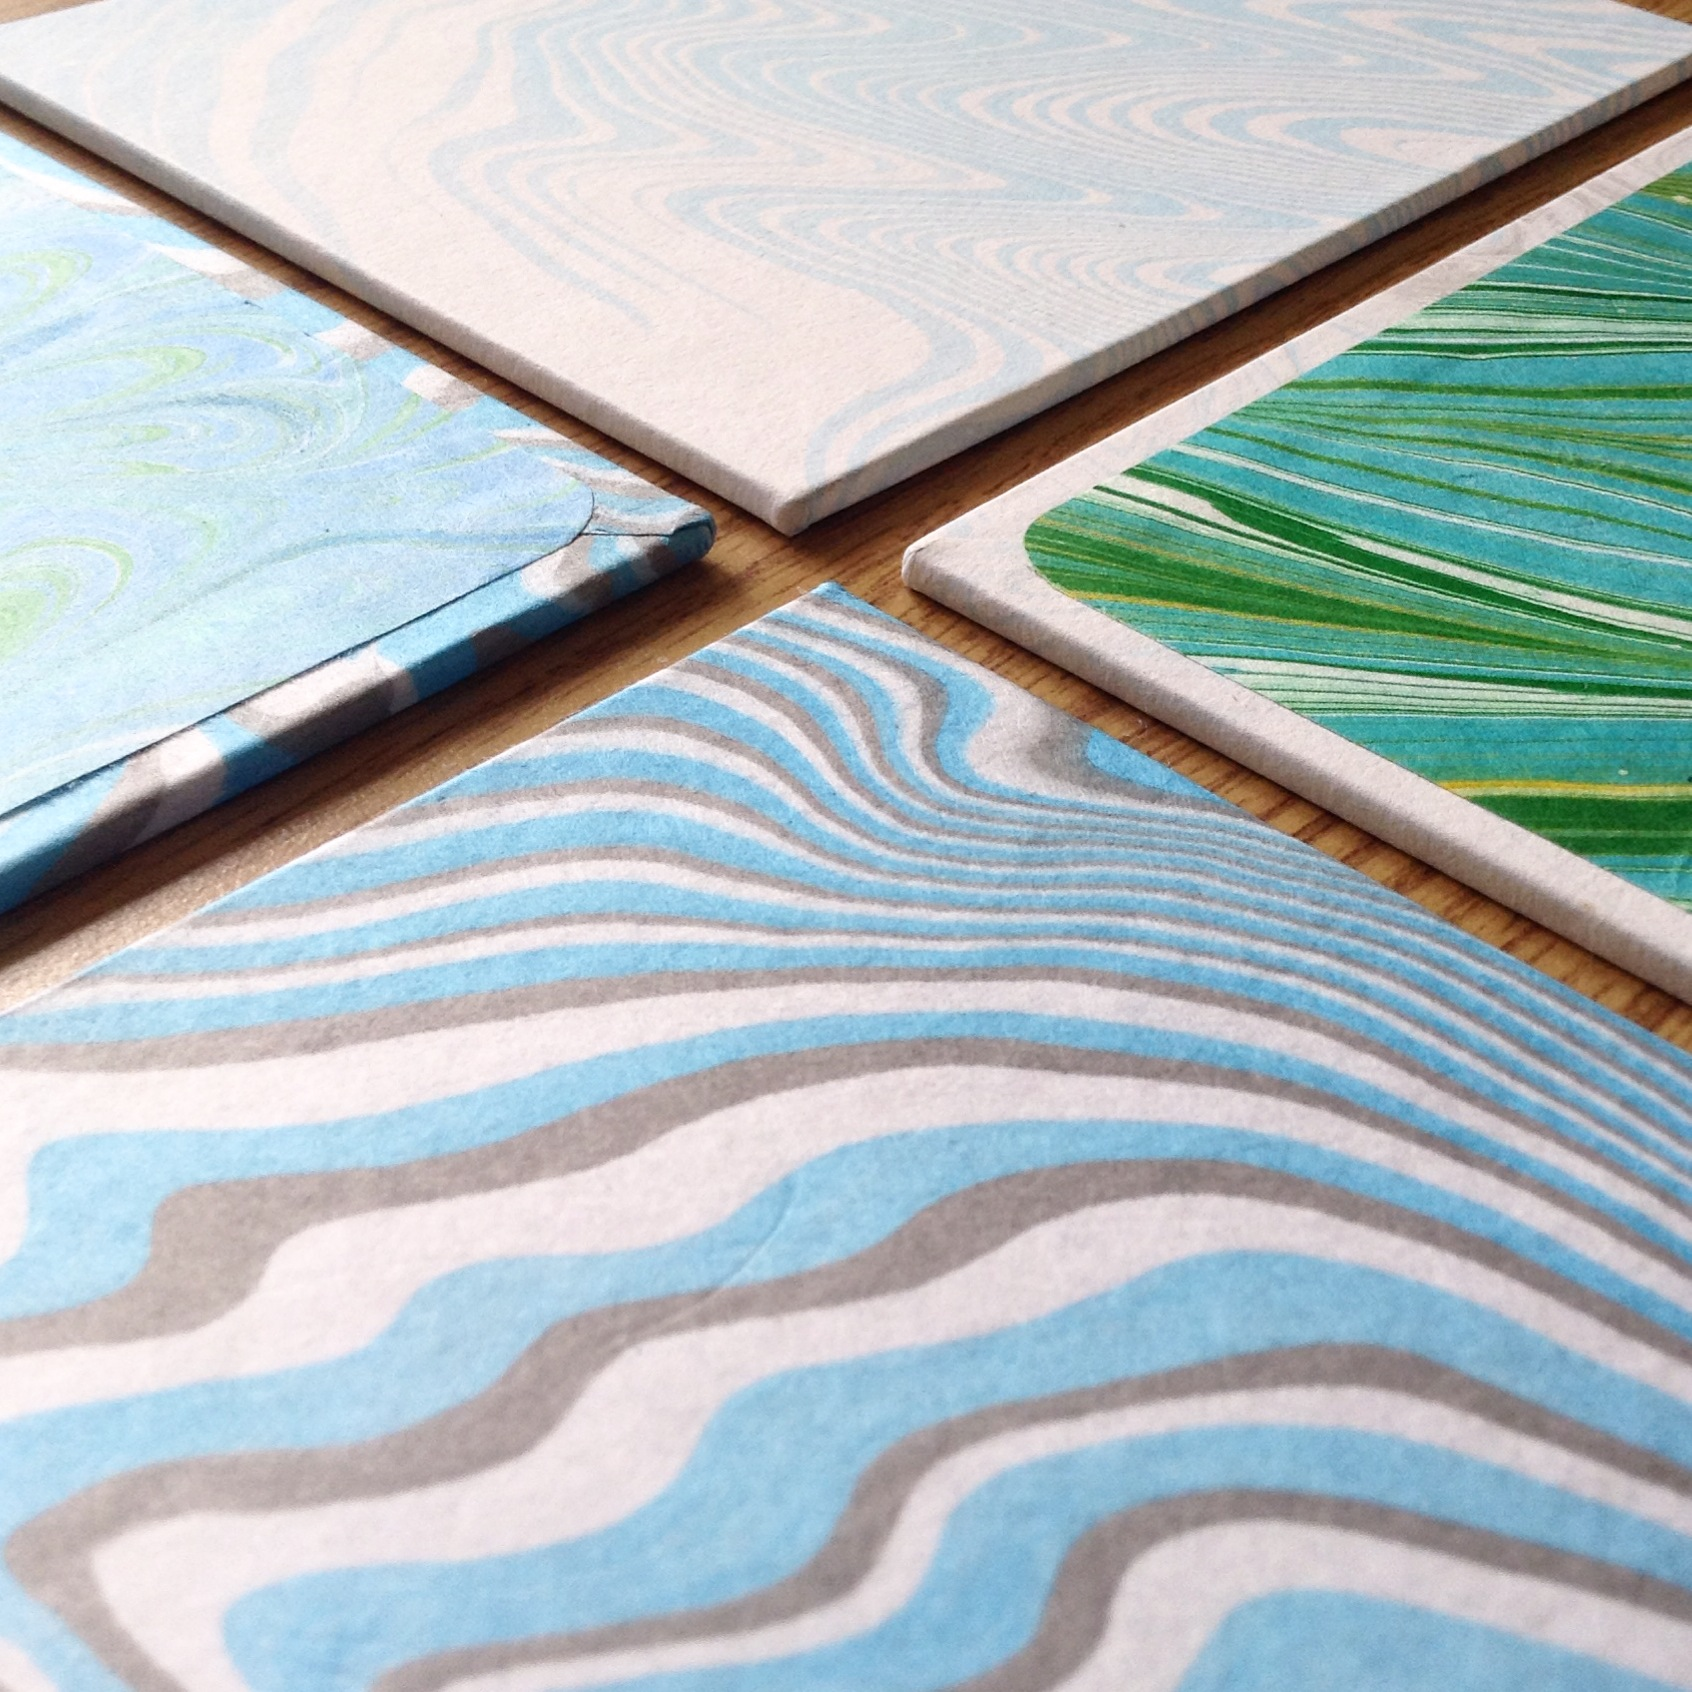 Suminagashi Marbled Book Covers by Ruth Bleakley